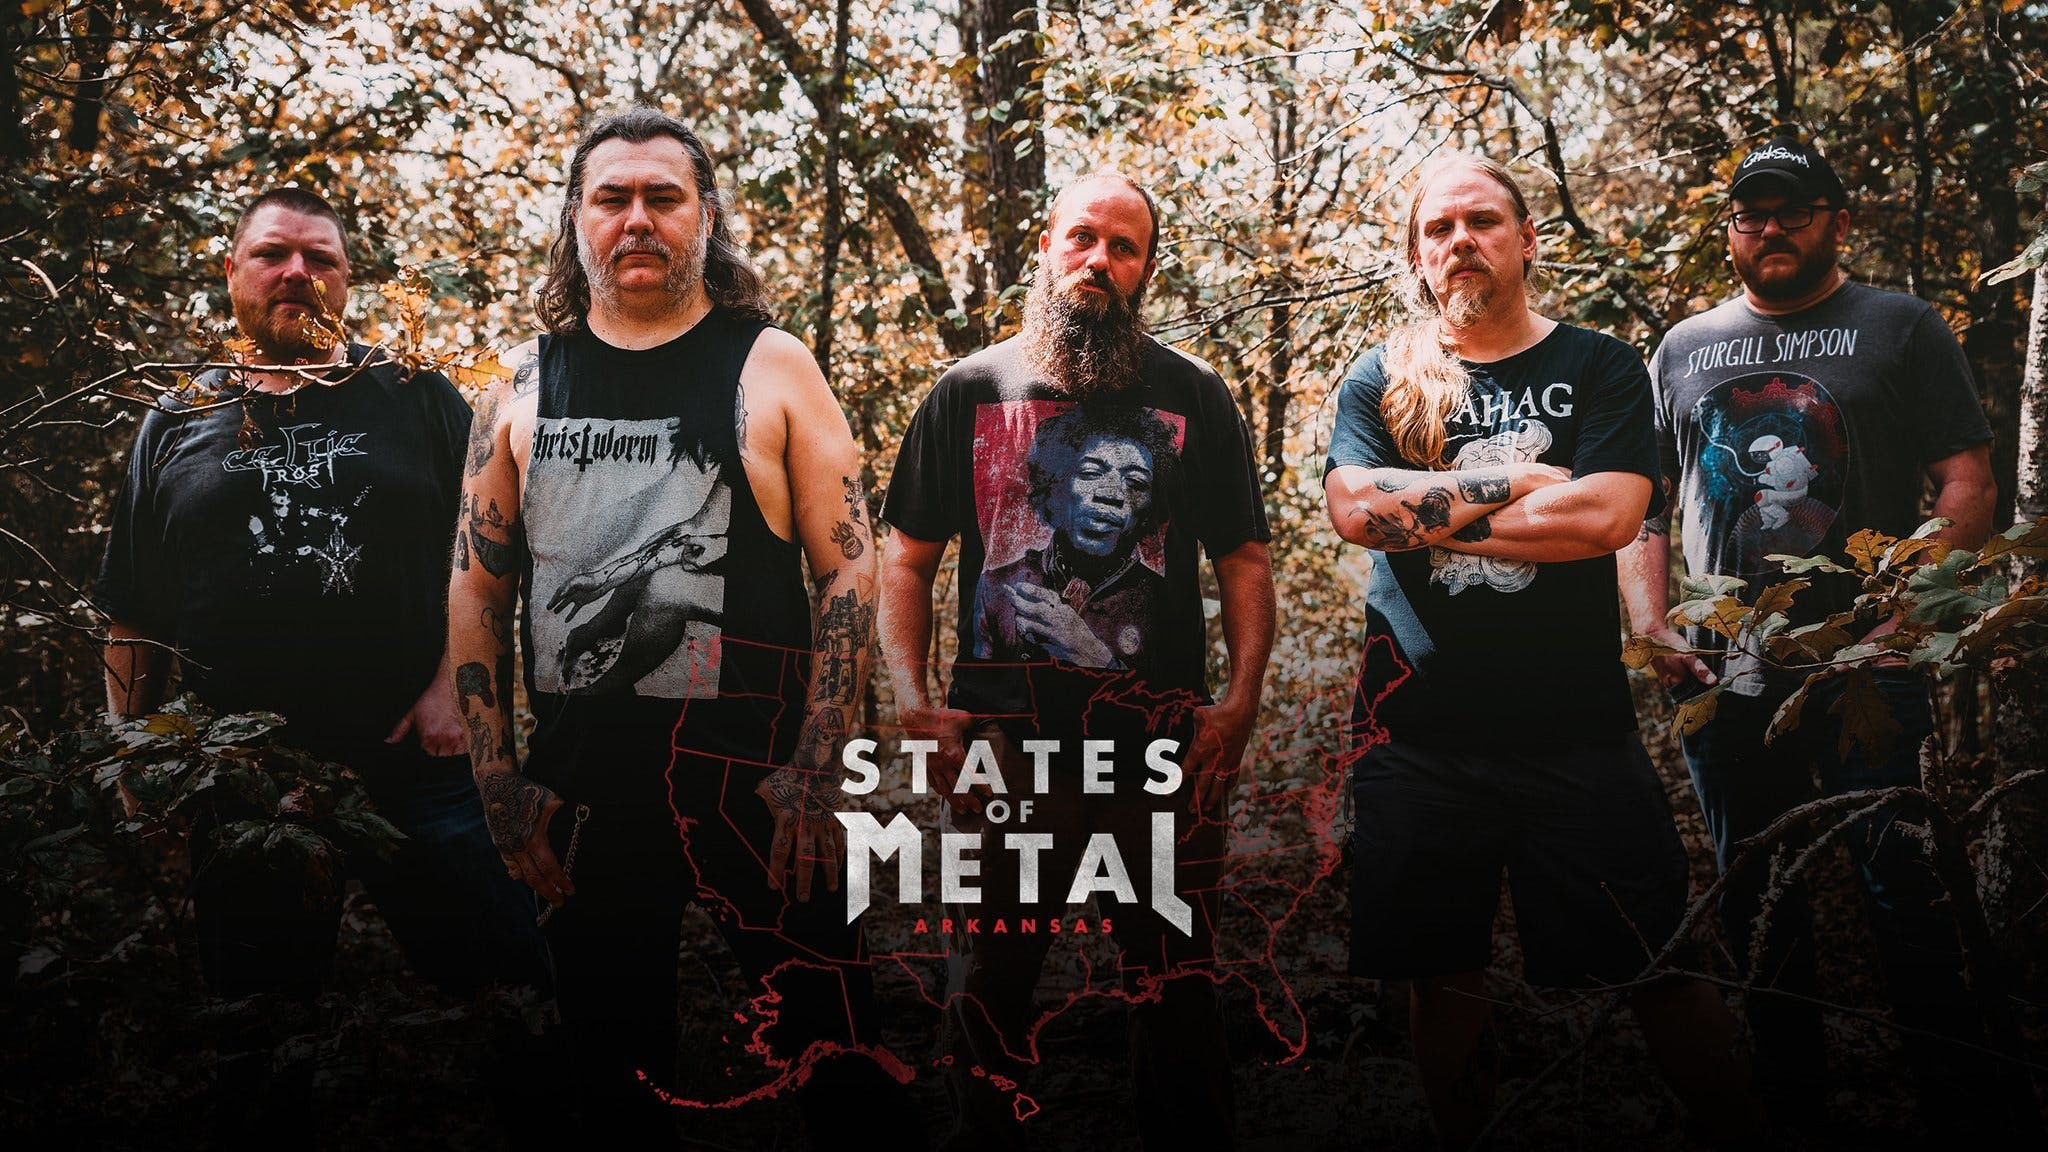 States of Metal: Arkansas Has An Honest DIY Ethos And A Vortex of Darkness At Its Core